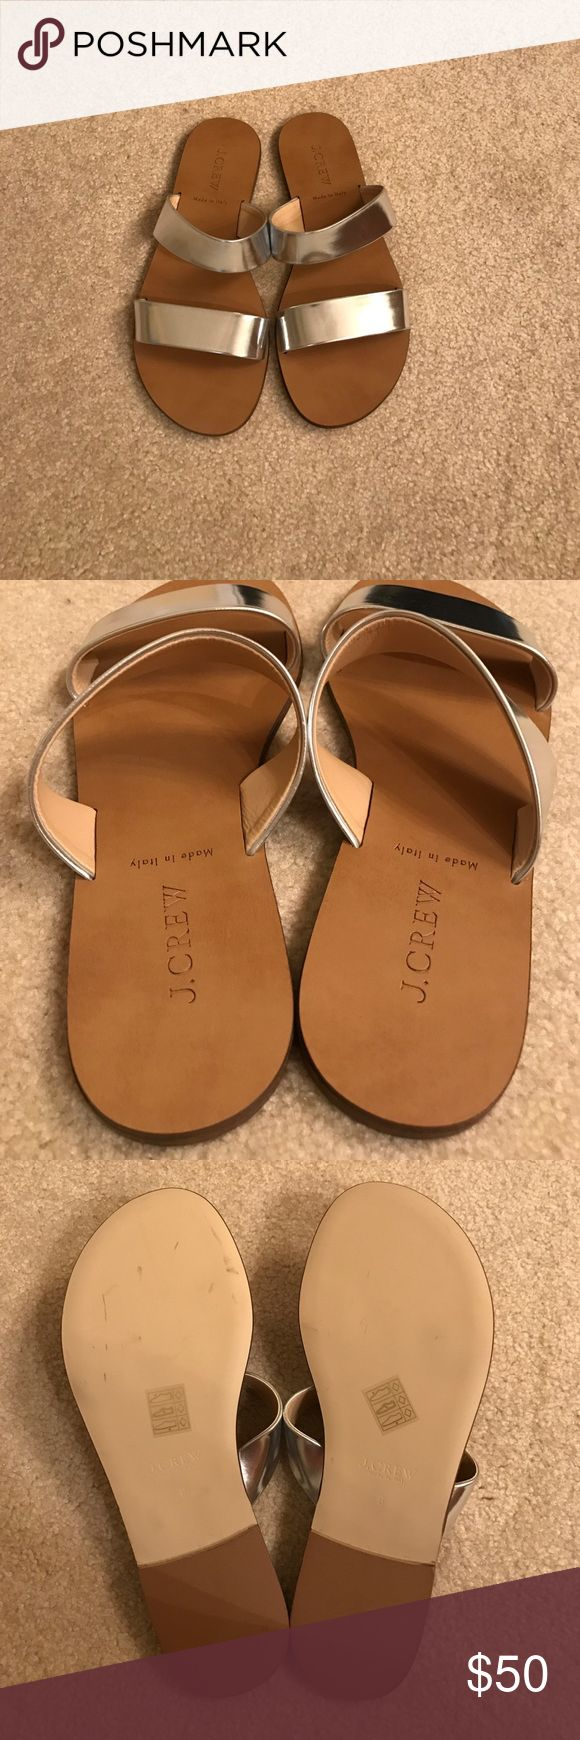 NWOT JCrew silver metallic slides NWOT JCrew silver metallic slides. Made in Italy. Size 8. No lowball offers please. Box not available. No trades. J. Crew Shoes